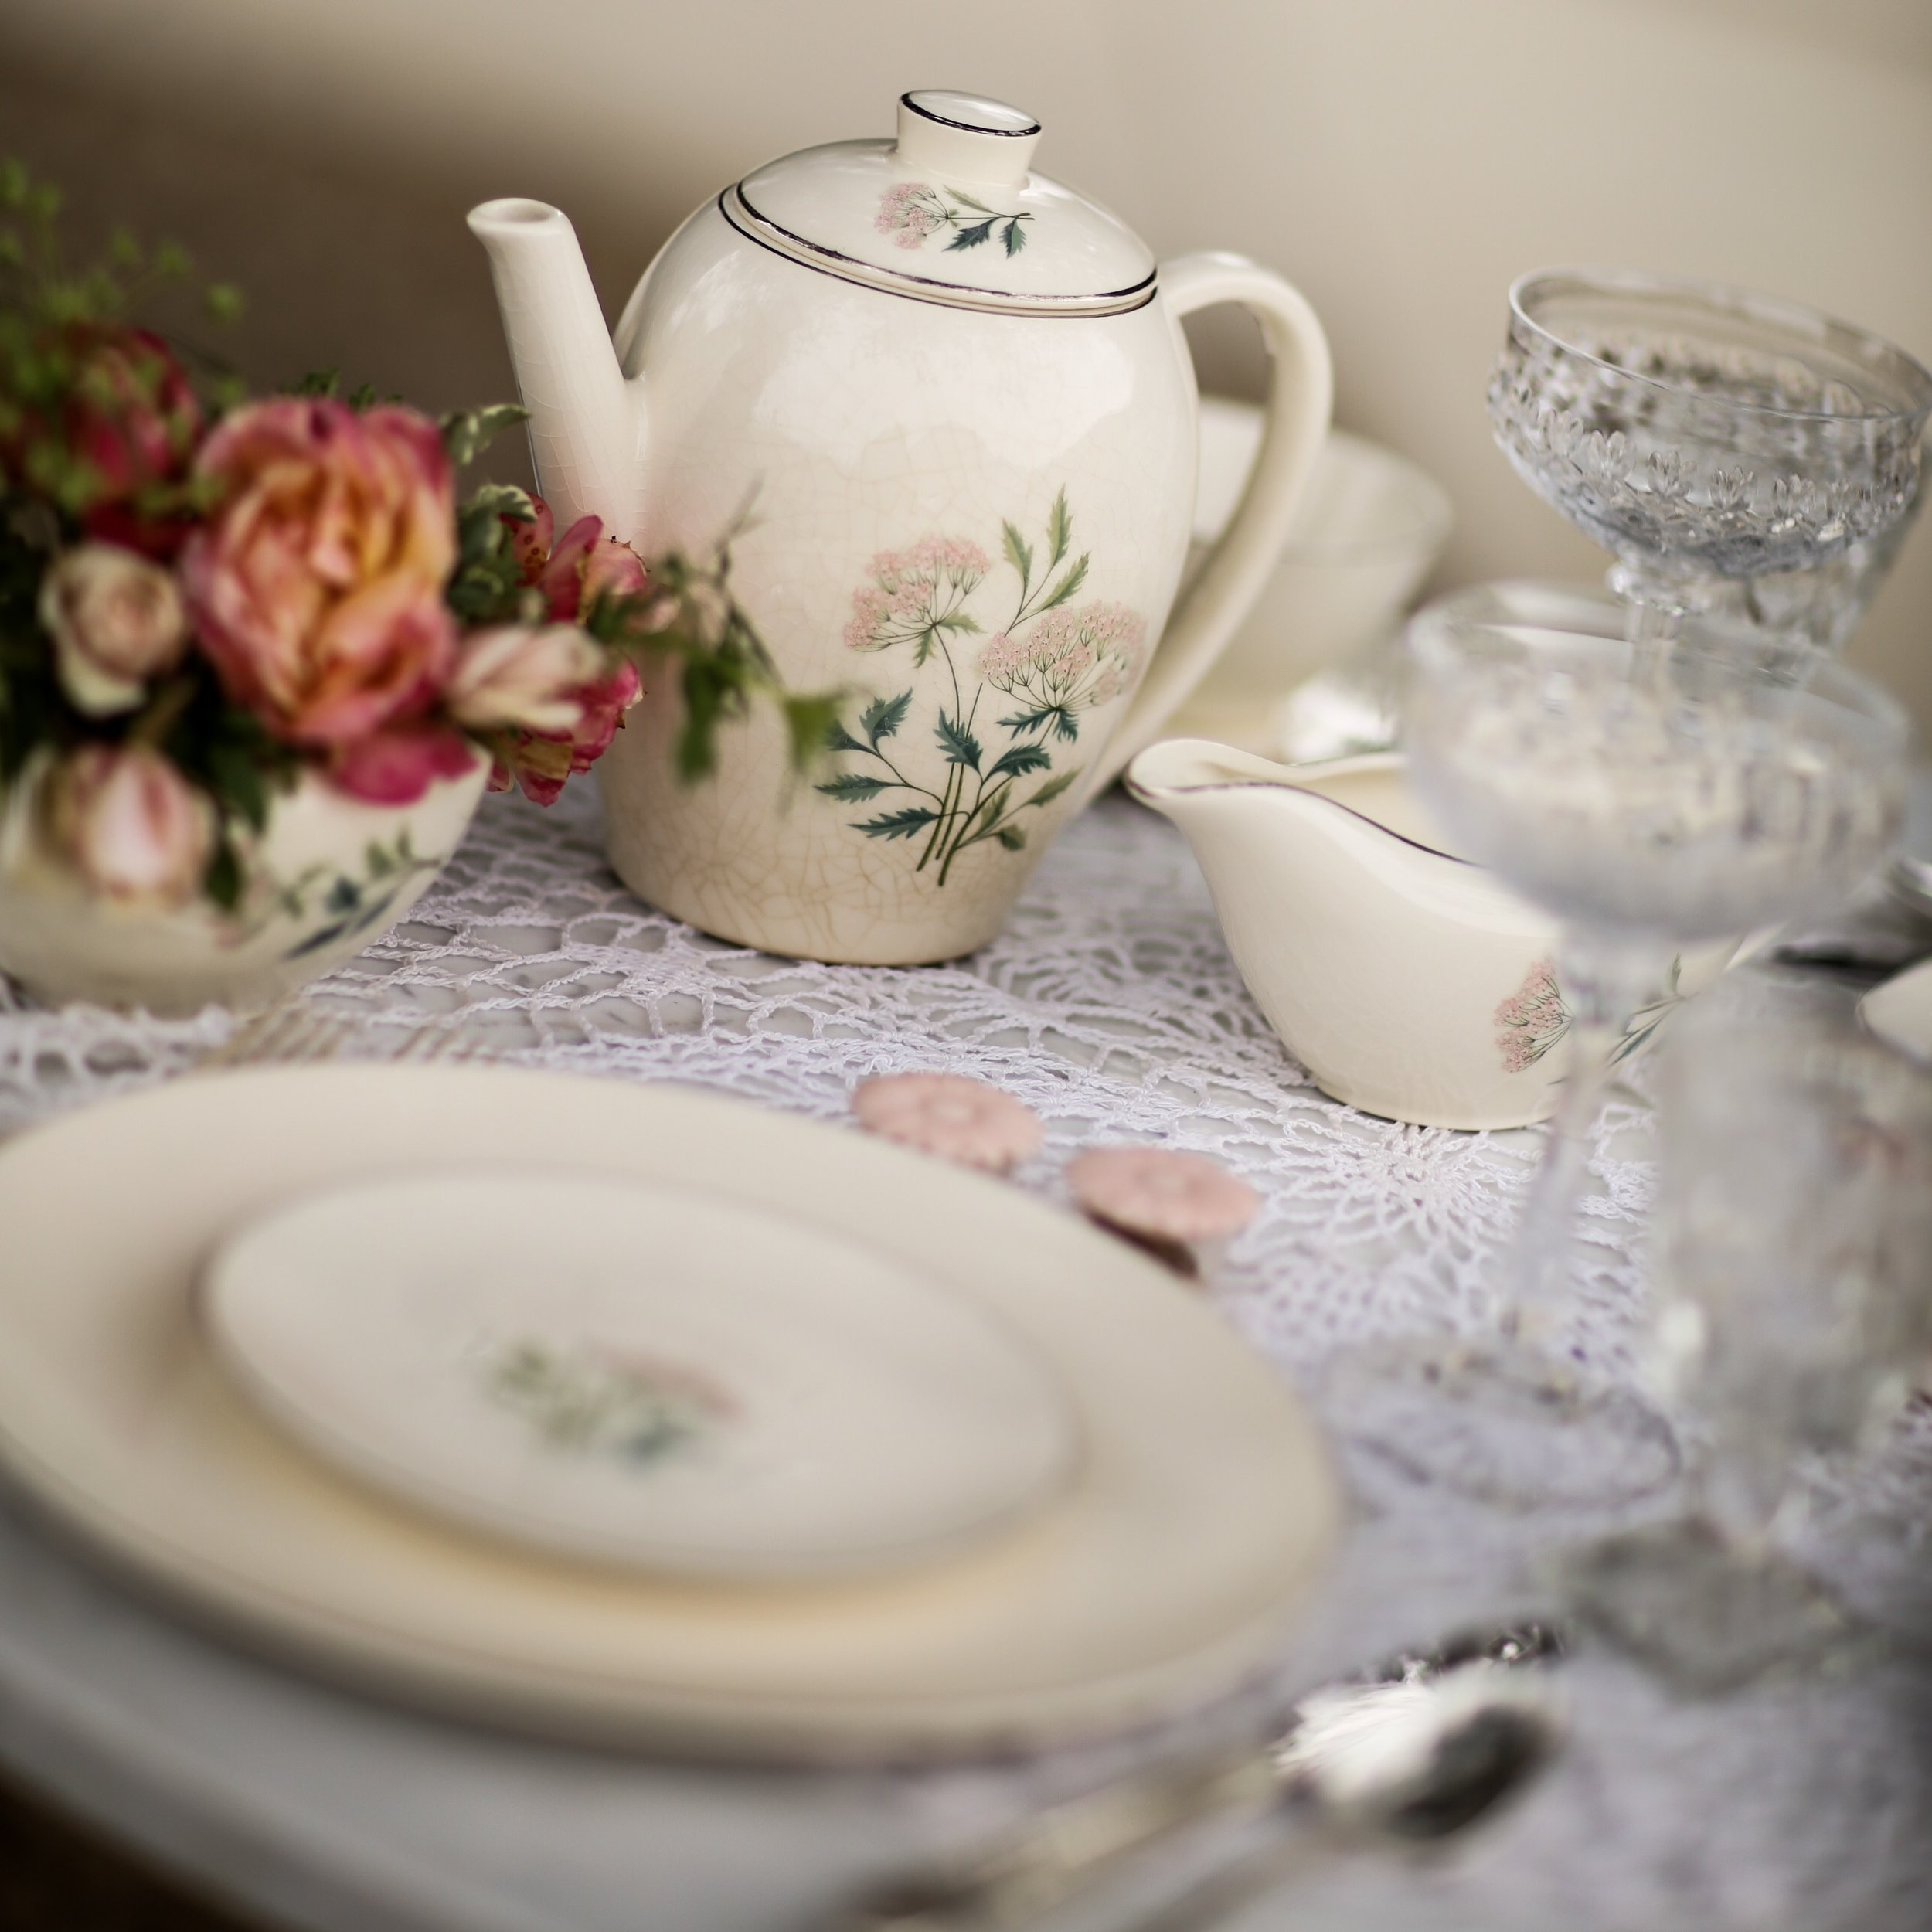 Homer Laughlin Ming Pattern tea pot and vintage china collection for rent in the Temecula Valley.